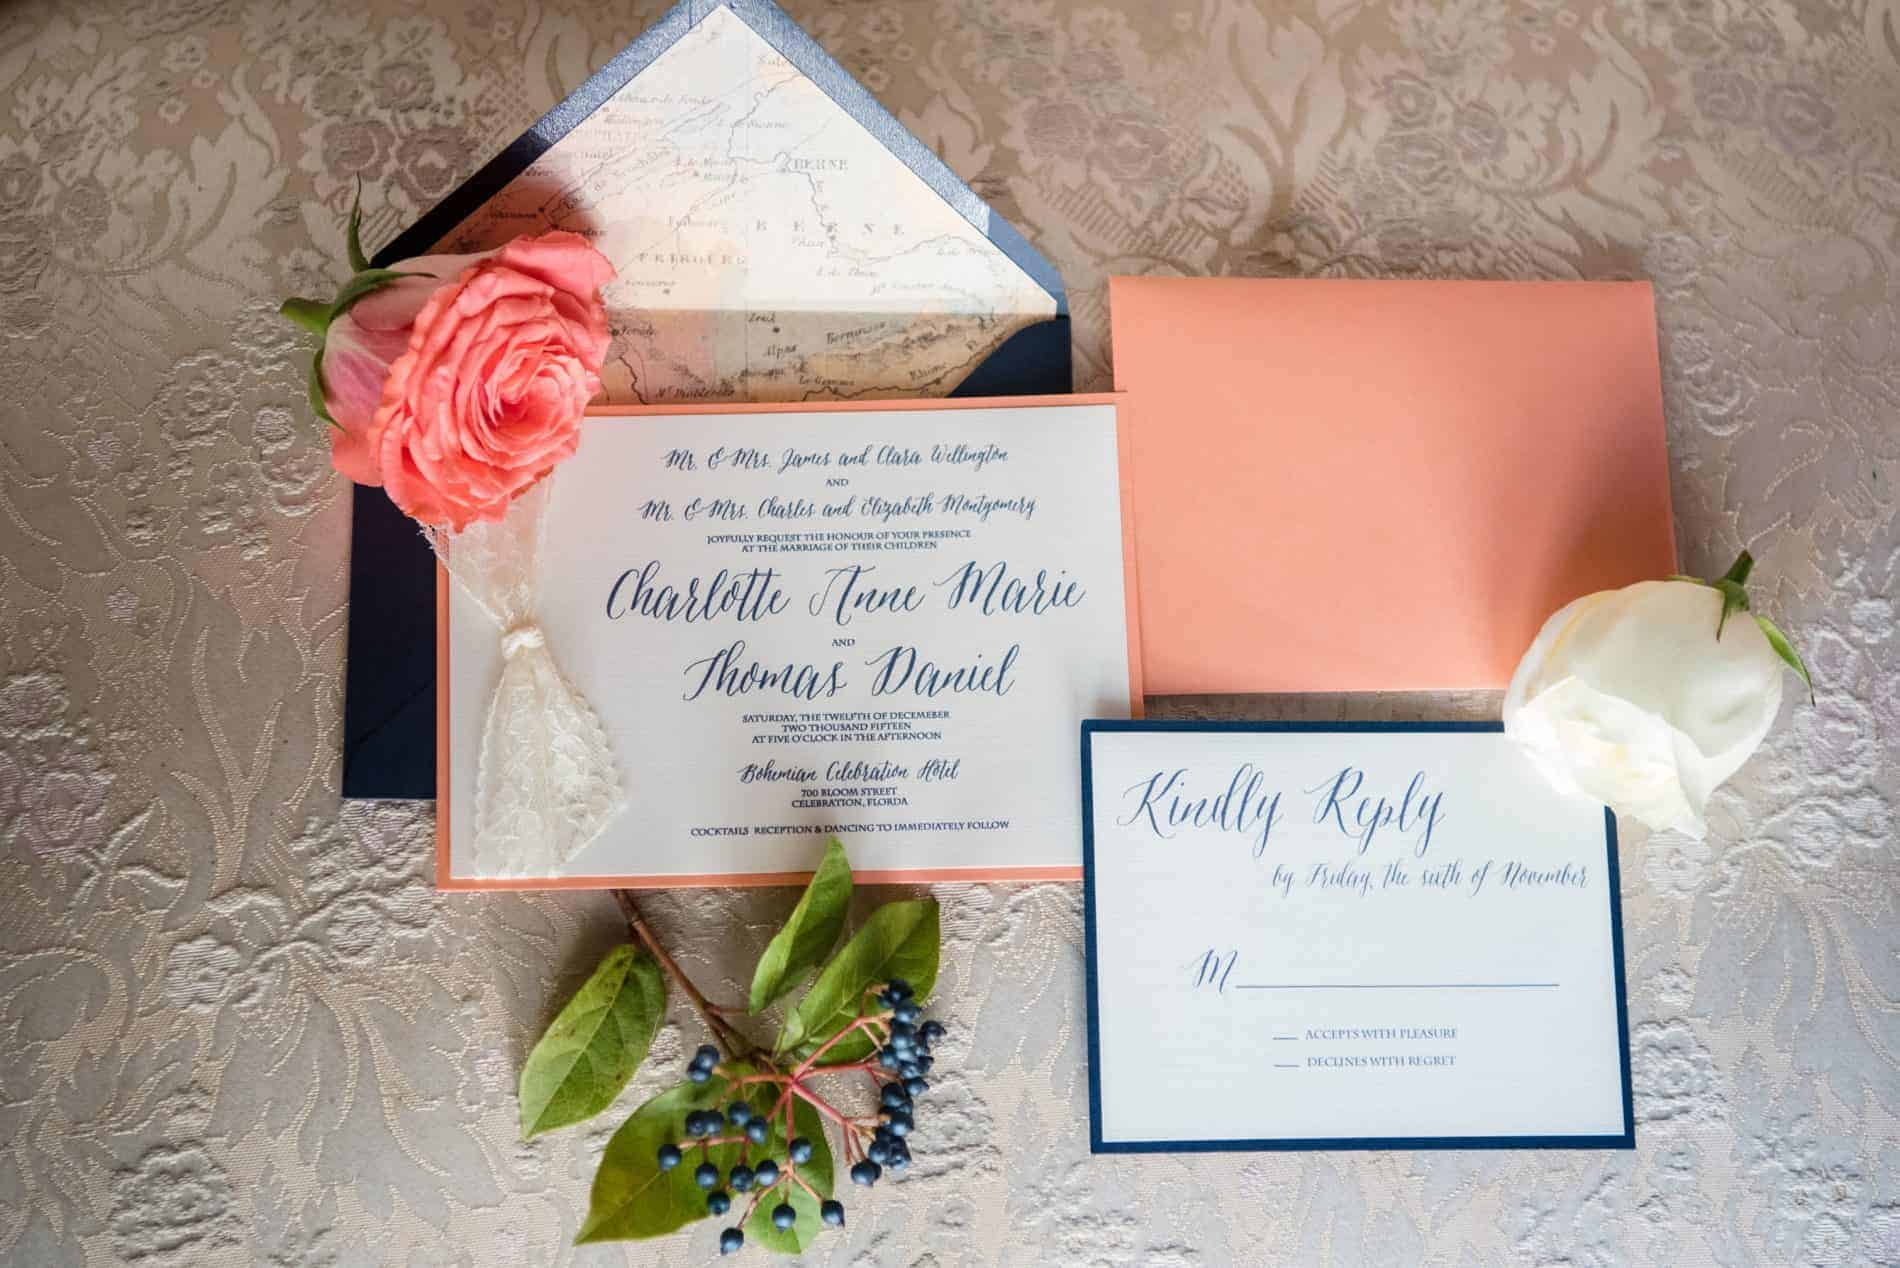 Custom Stationary was provided by Megan & Cedar Watson. They are the Owners Paper Goat Post.